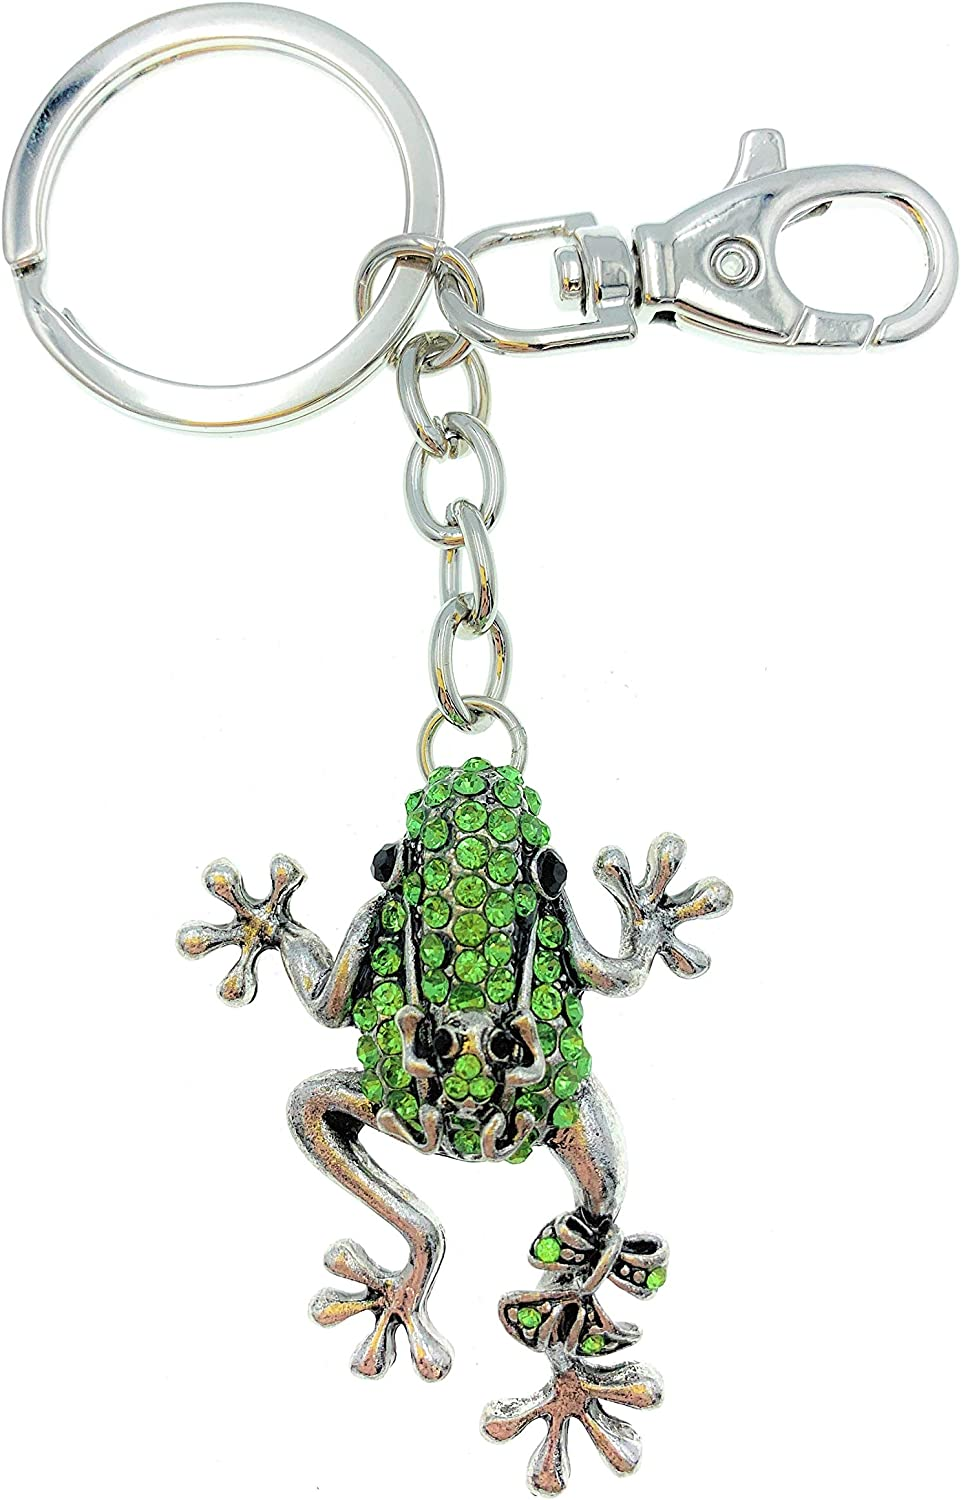 Kubla Craft Frog with Baby Key Chain, 4.5 Inches Long